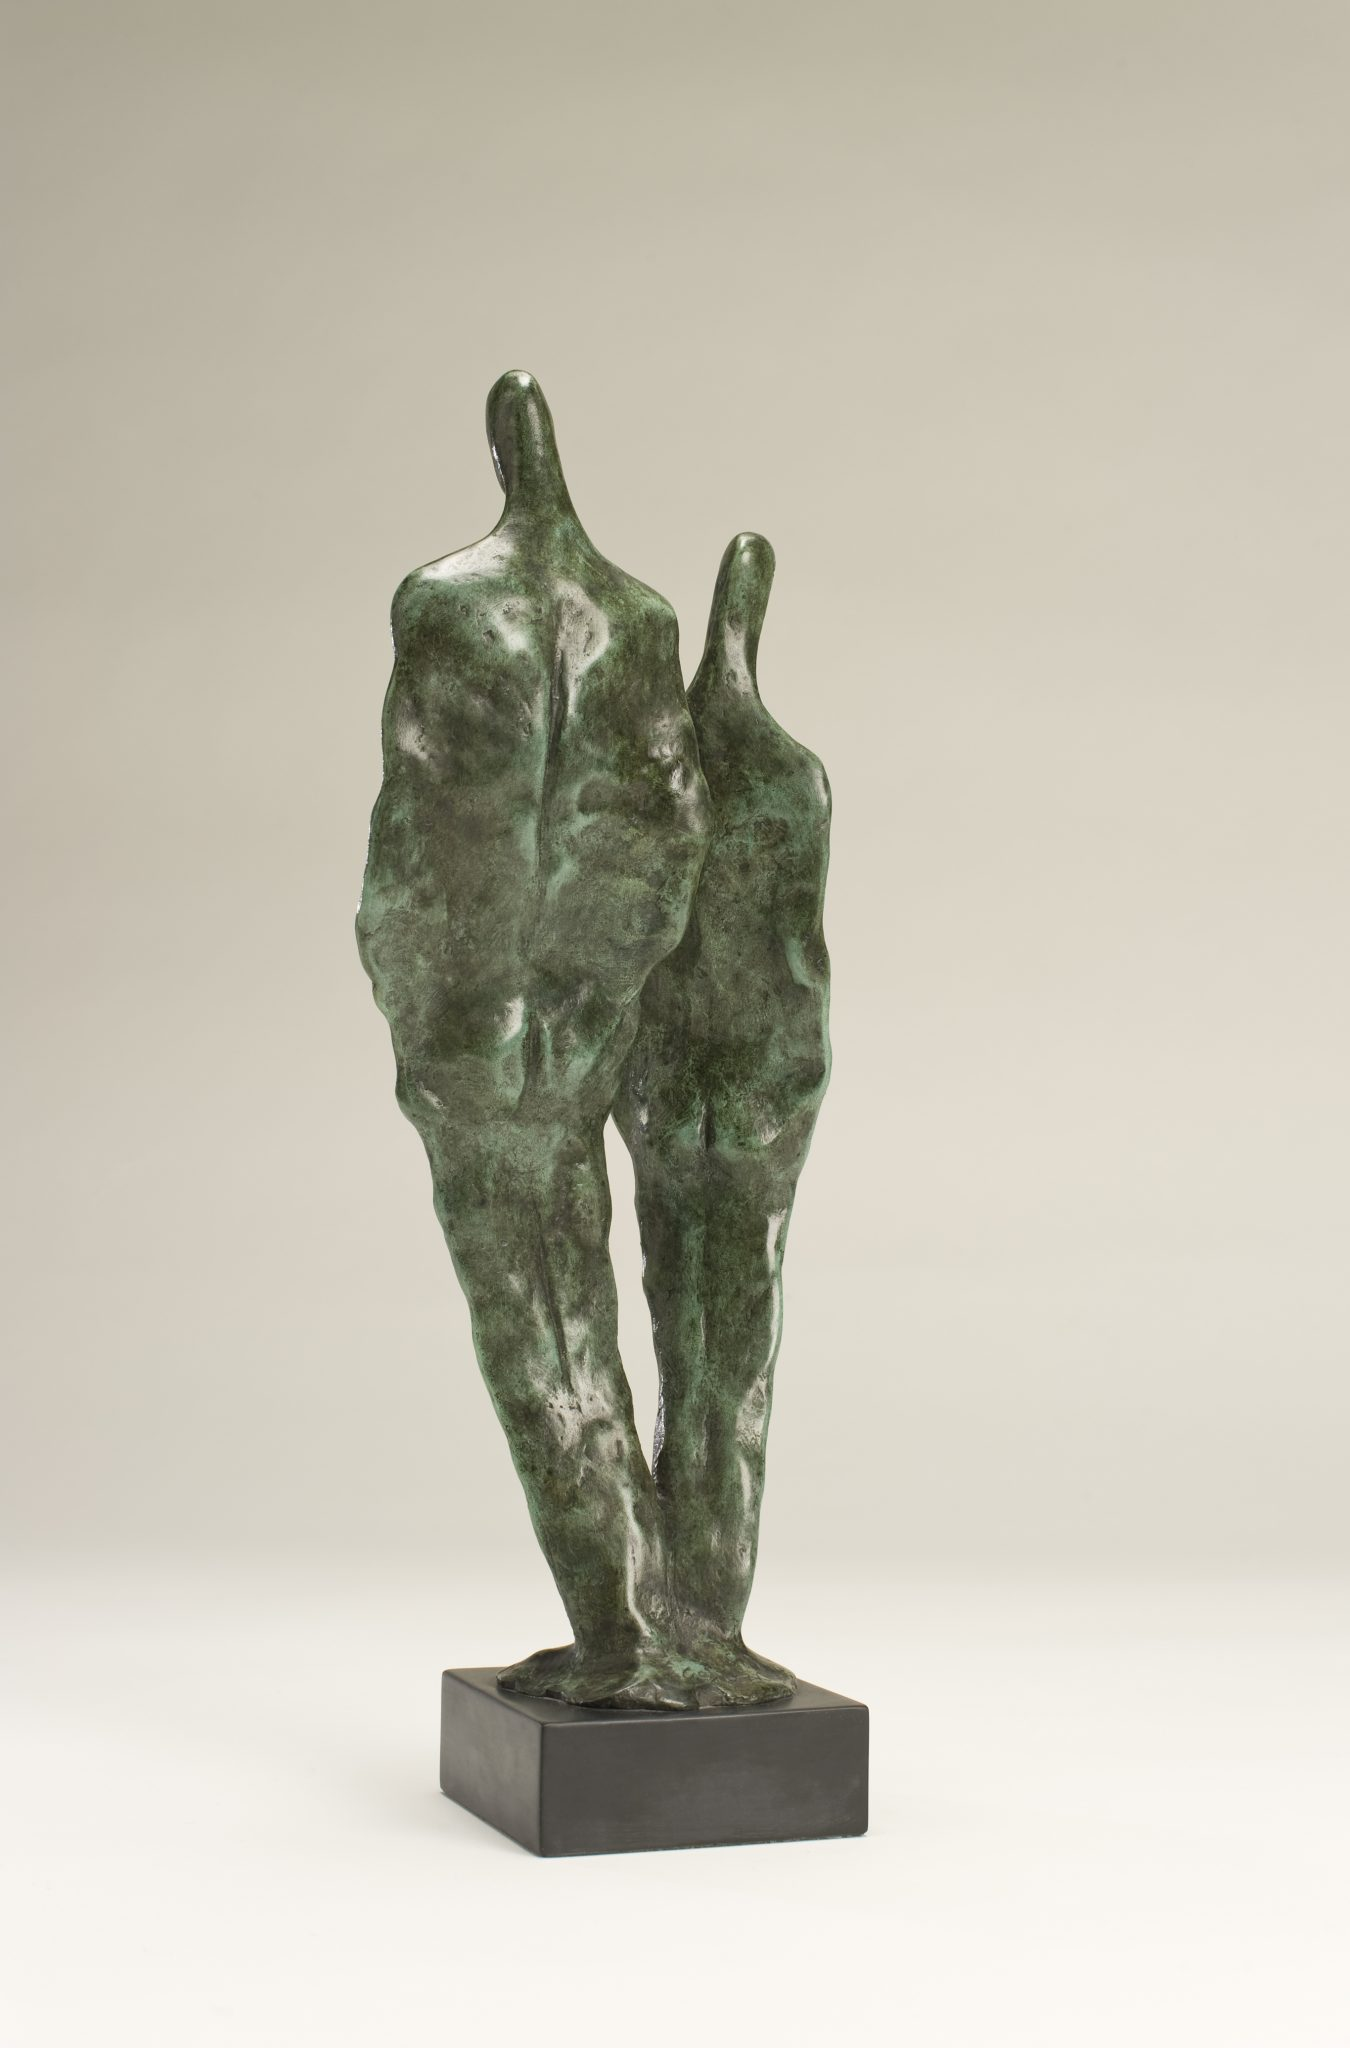 Back view of sculpture of loving couple